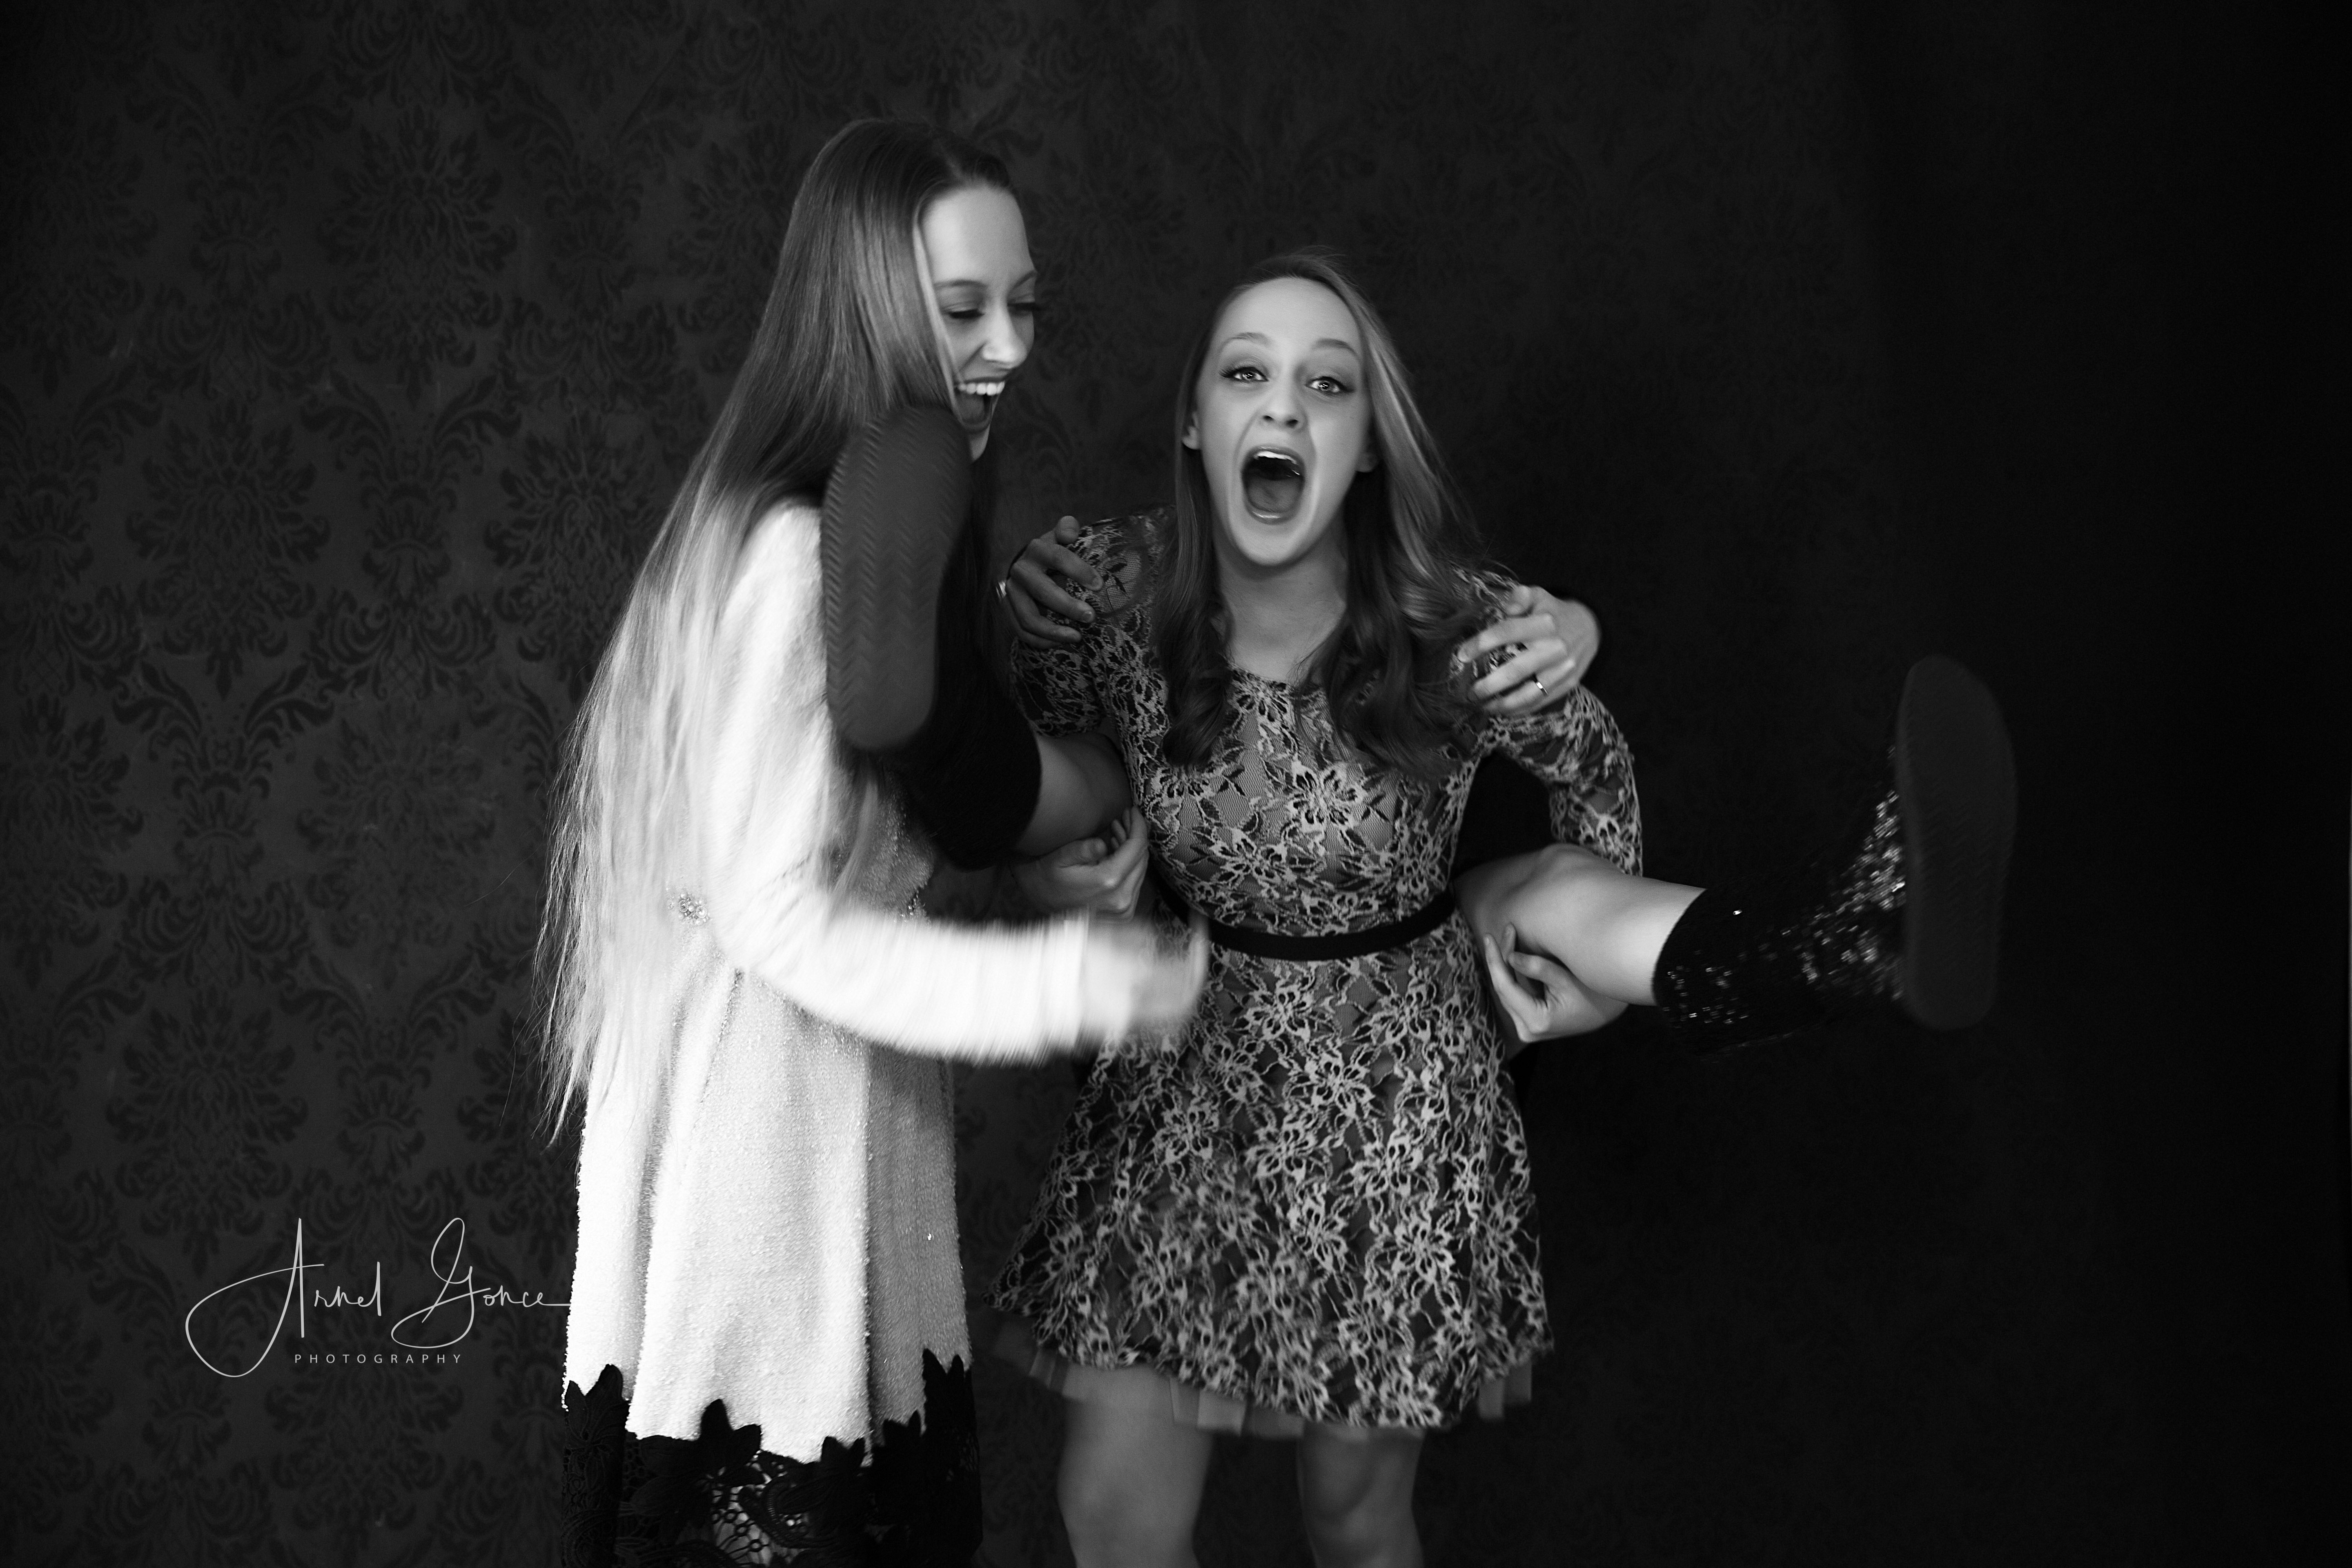 Black and white photograph of sisters horsing around during their photoshoot.